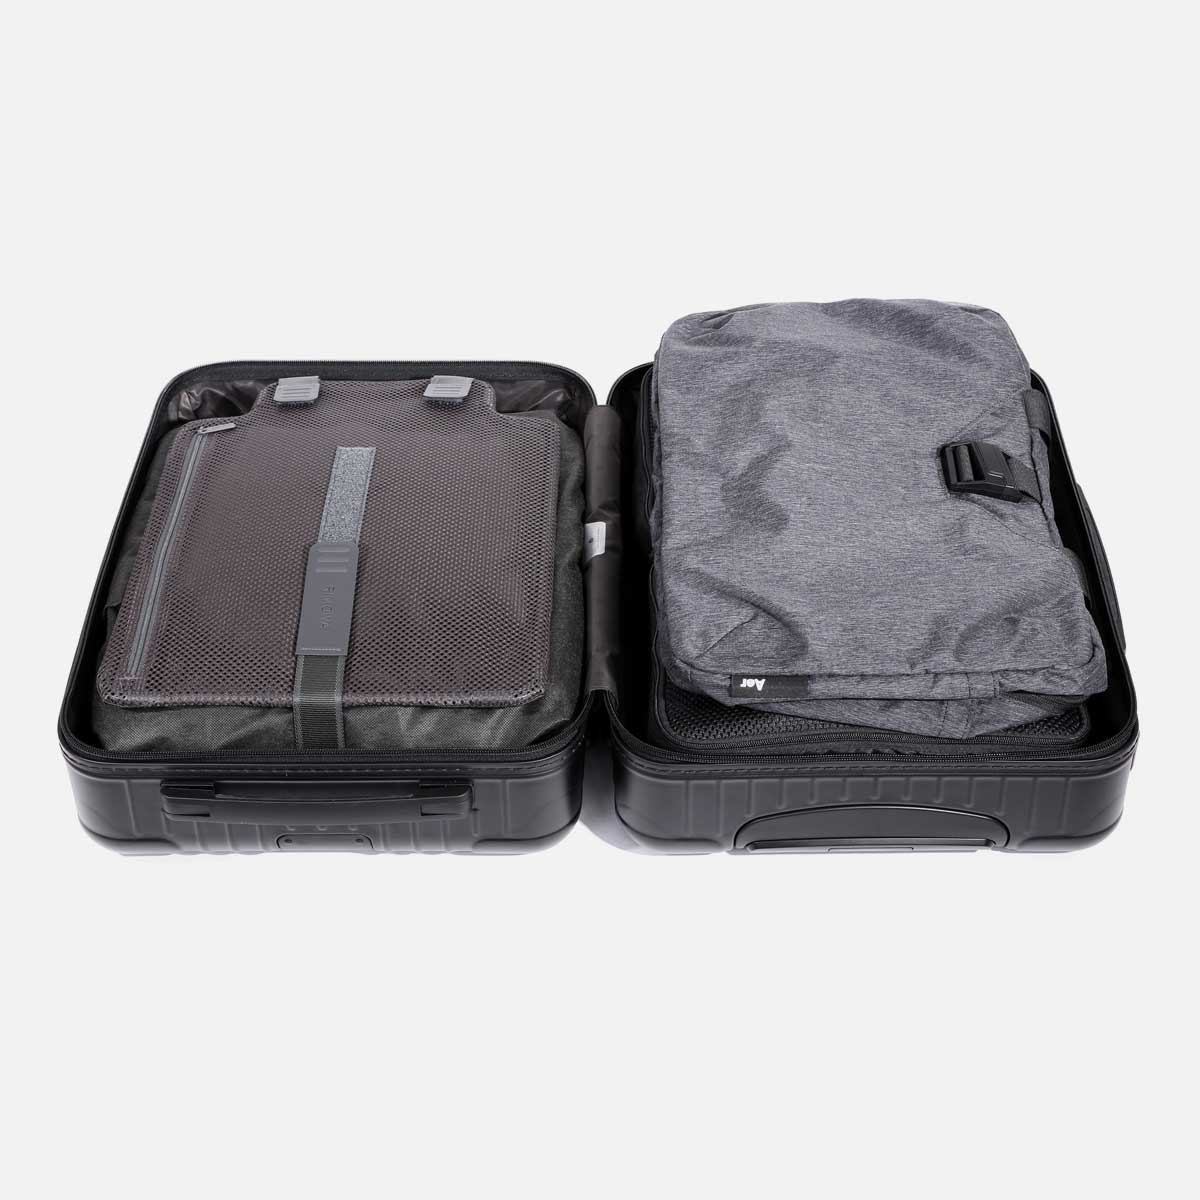 Packs flat inside luggage or carry-on bag.